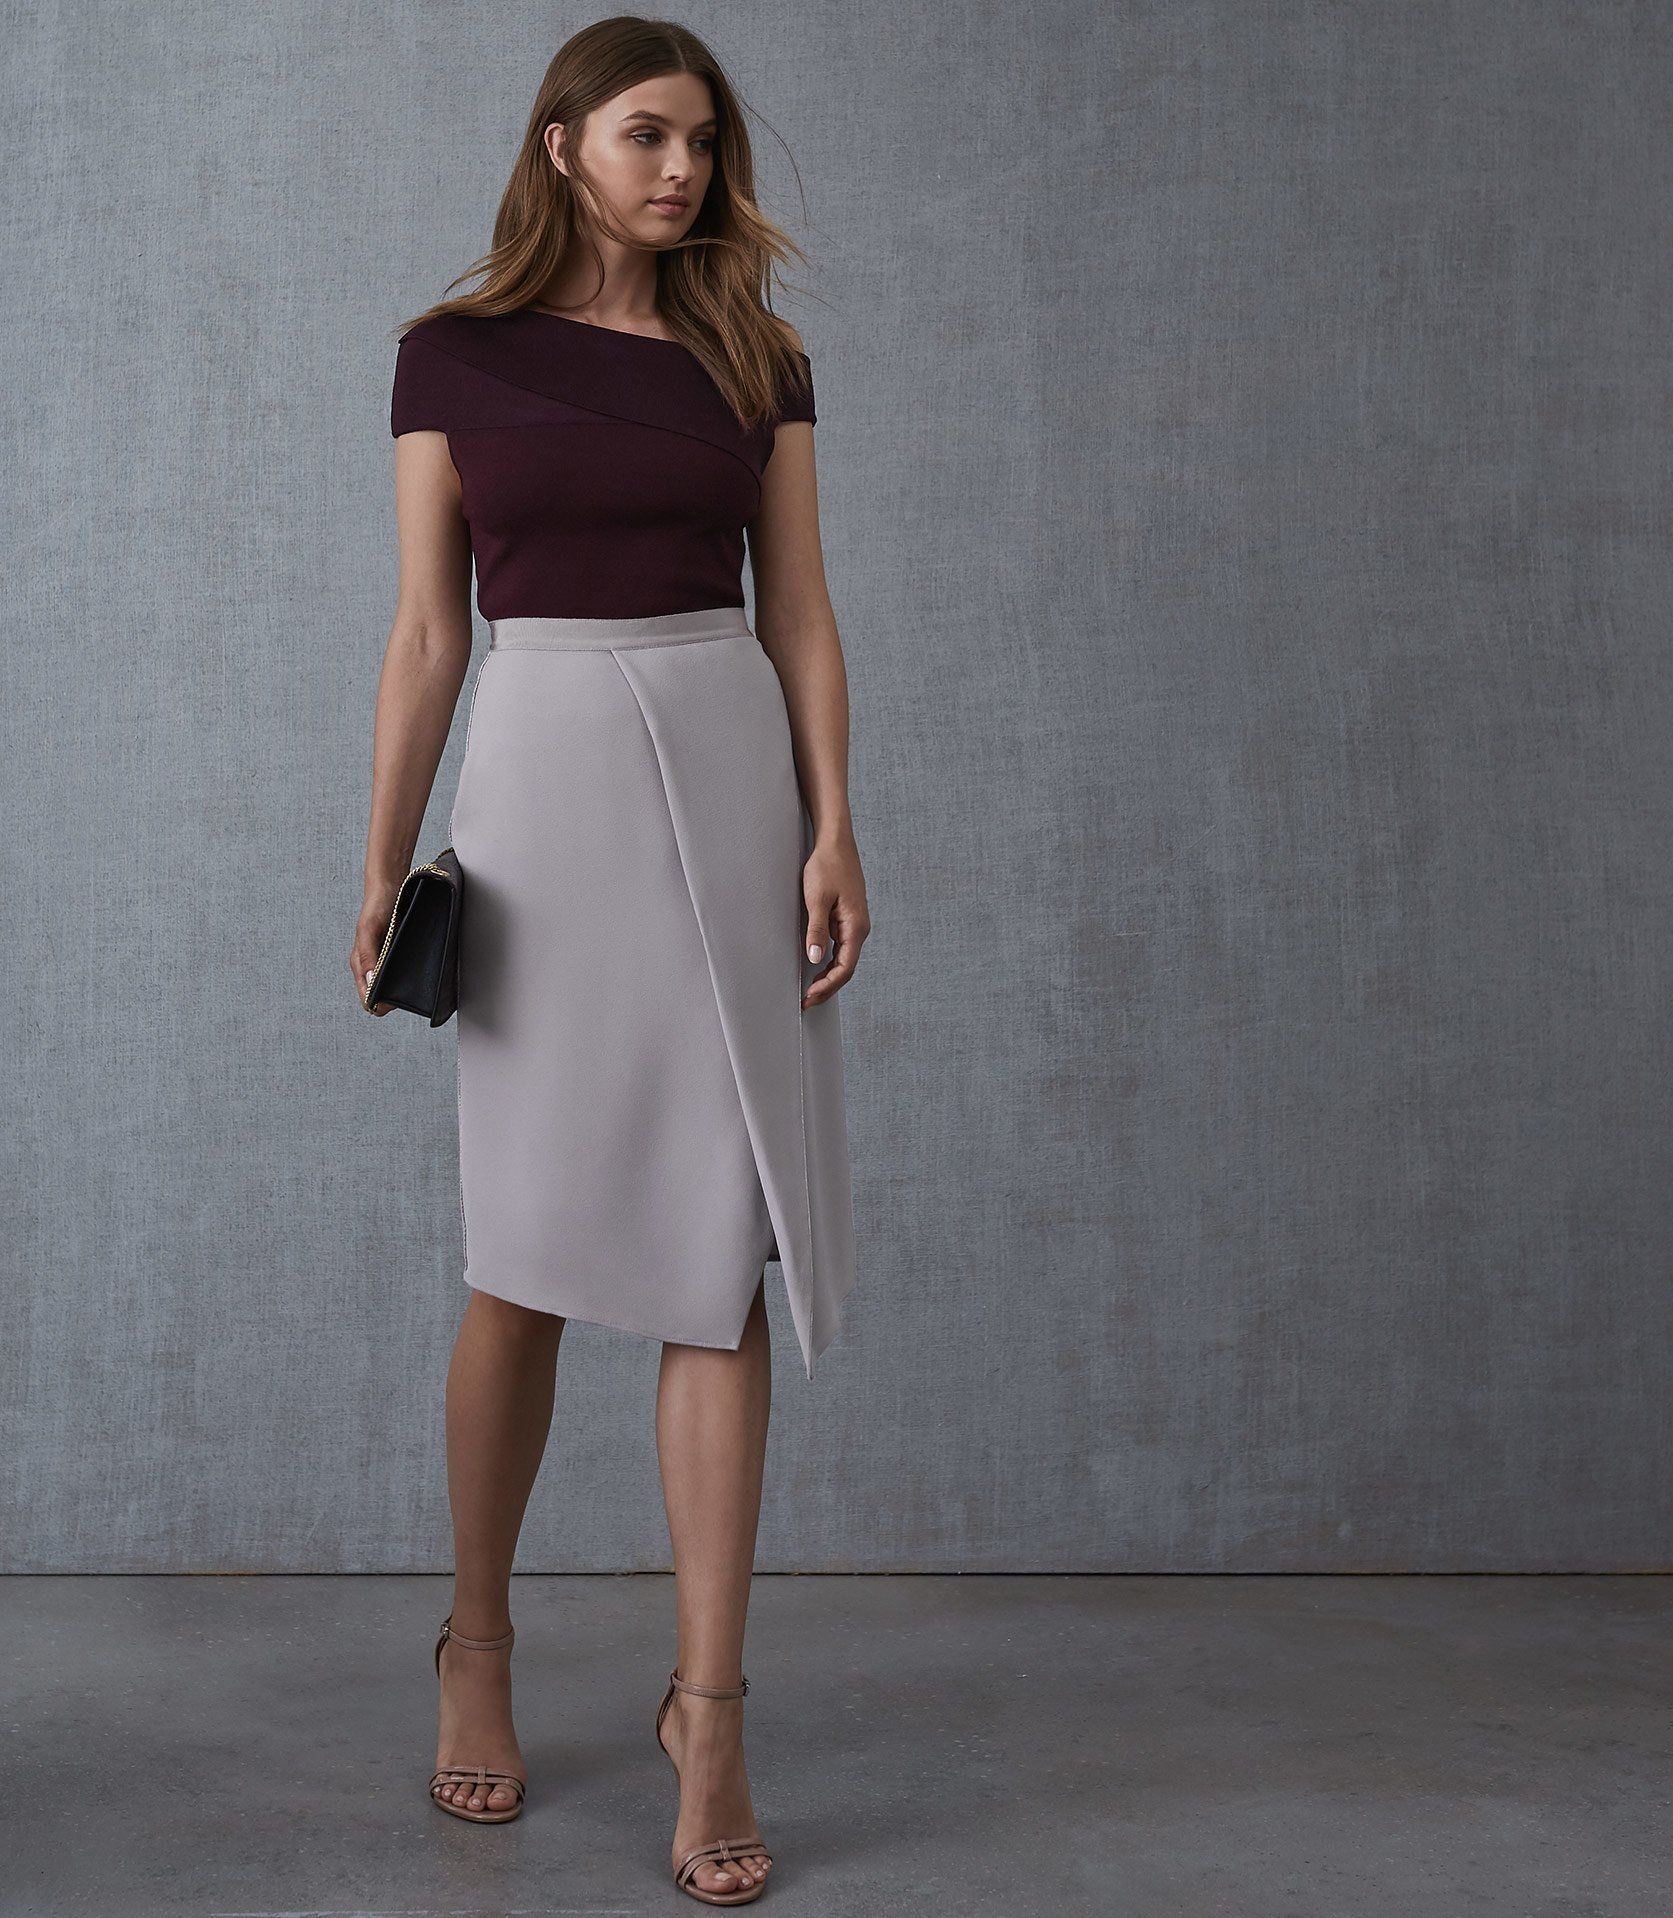 Indigo Berry Knitted Bardot Top   REISS is part of Work skirt outfit - The indigo knitted bardot top in berry plays its part in our iconic tops collection and is available to buy online at REISS